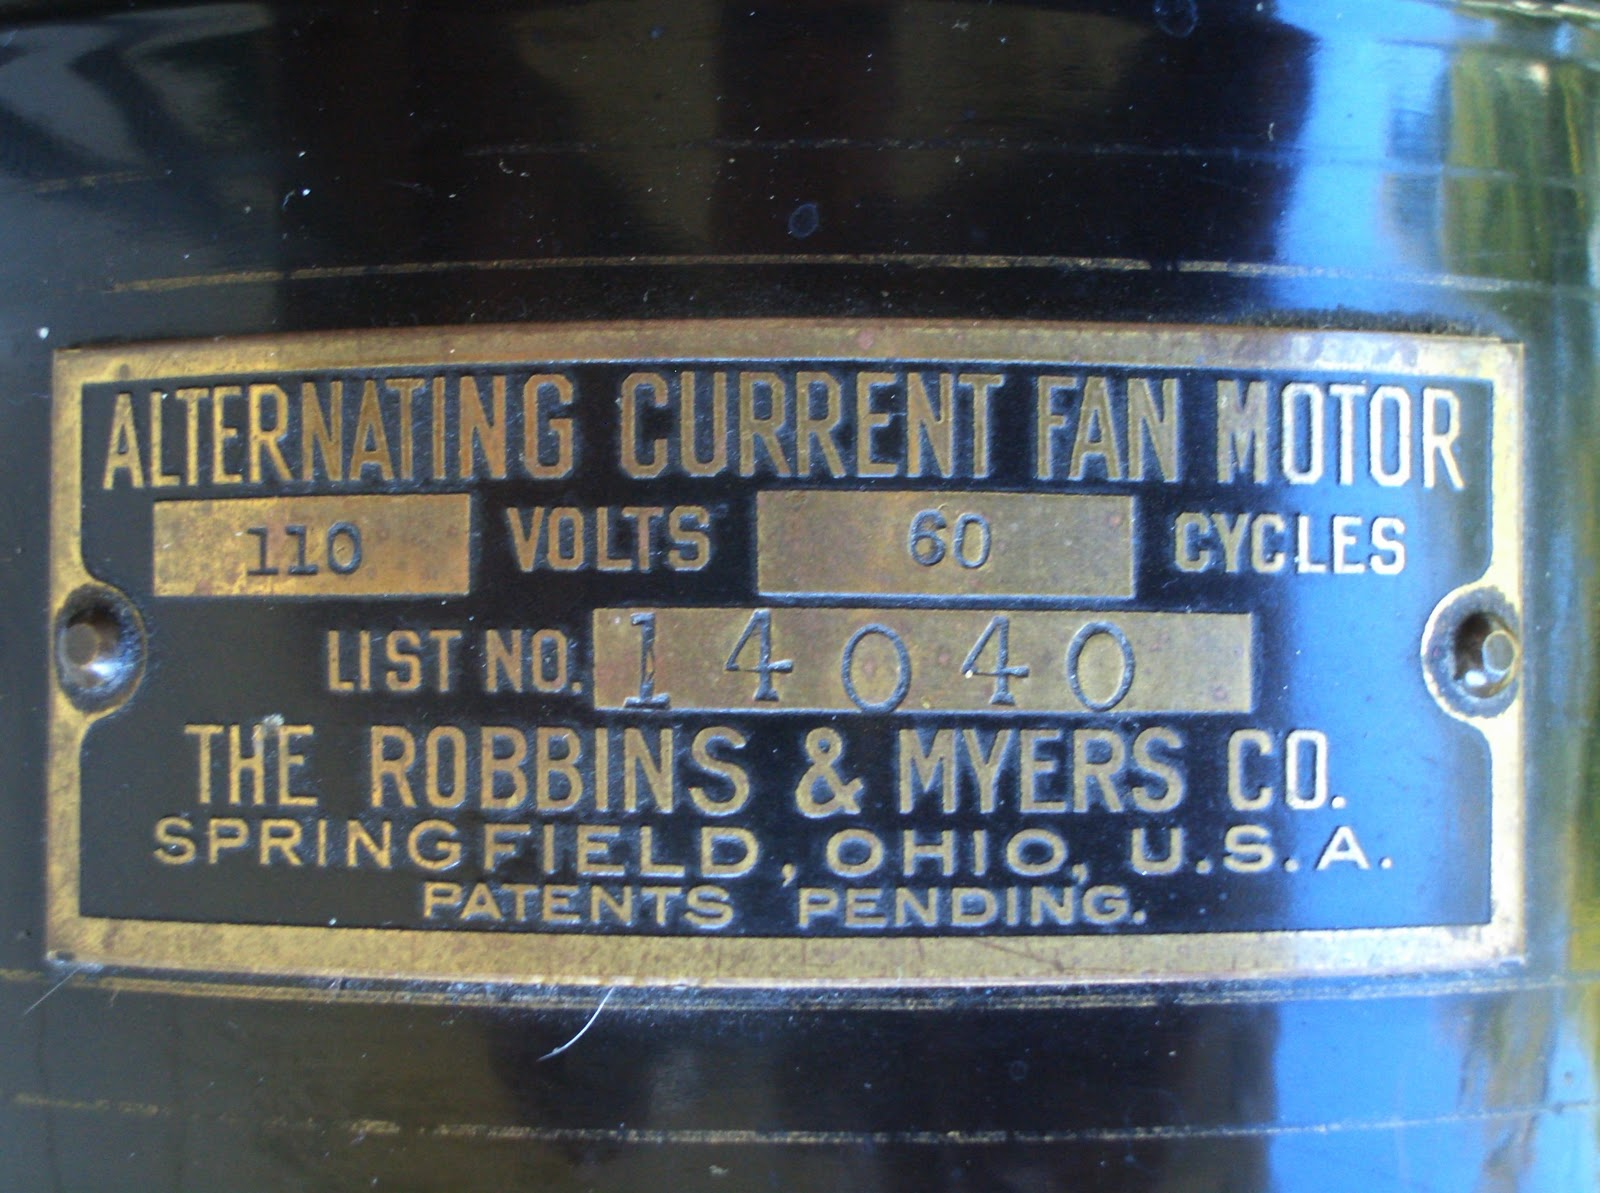 CIMG5051 early electric fans robbins & myers list 1404 desk fans, 1911 1915 robbins and myers fan motor wiring diagram at mifinder.co